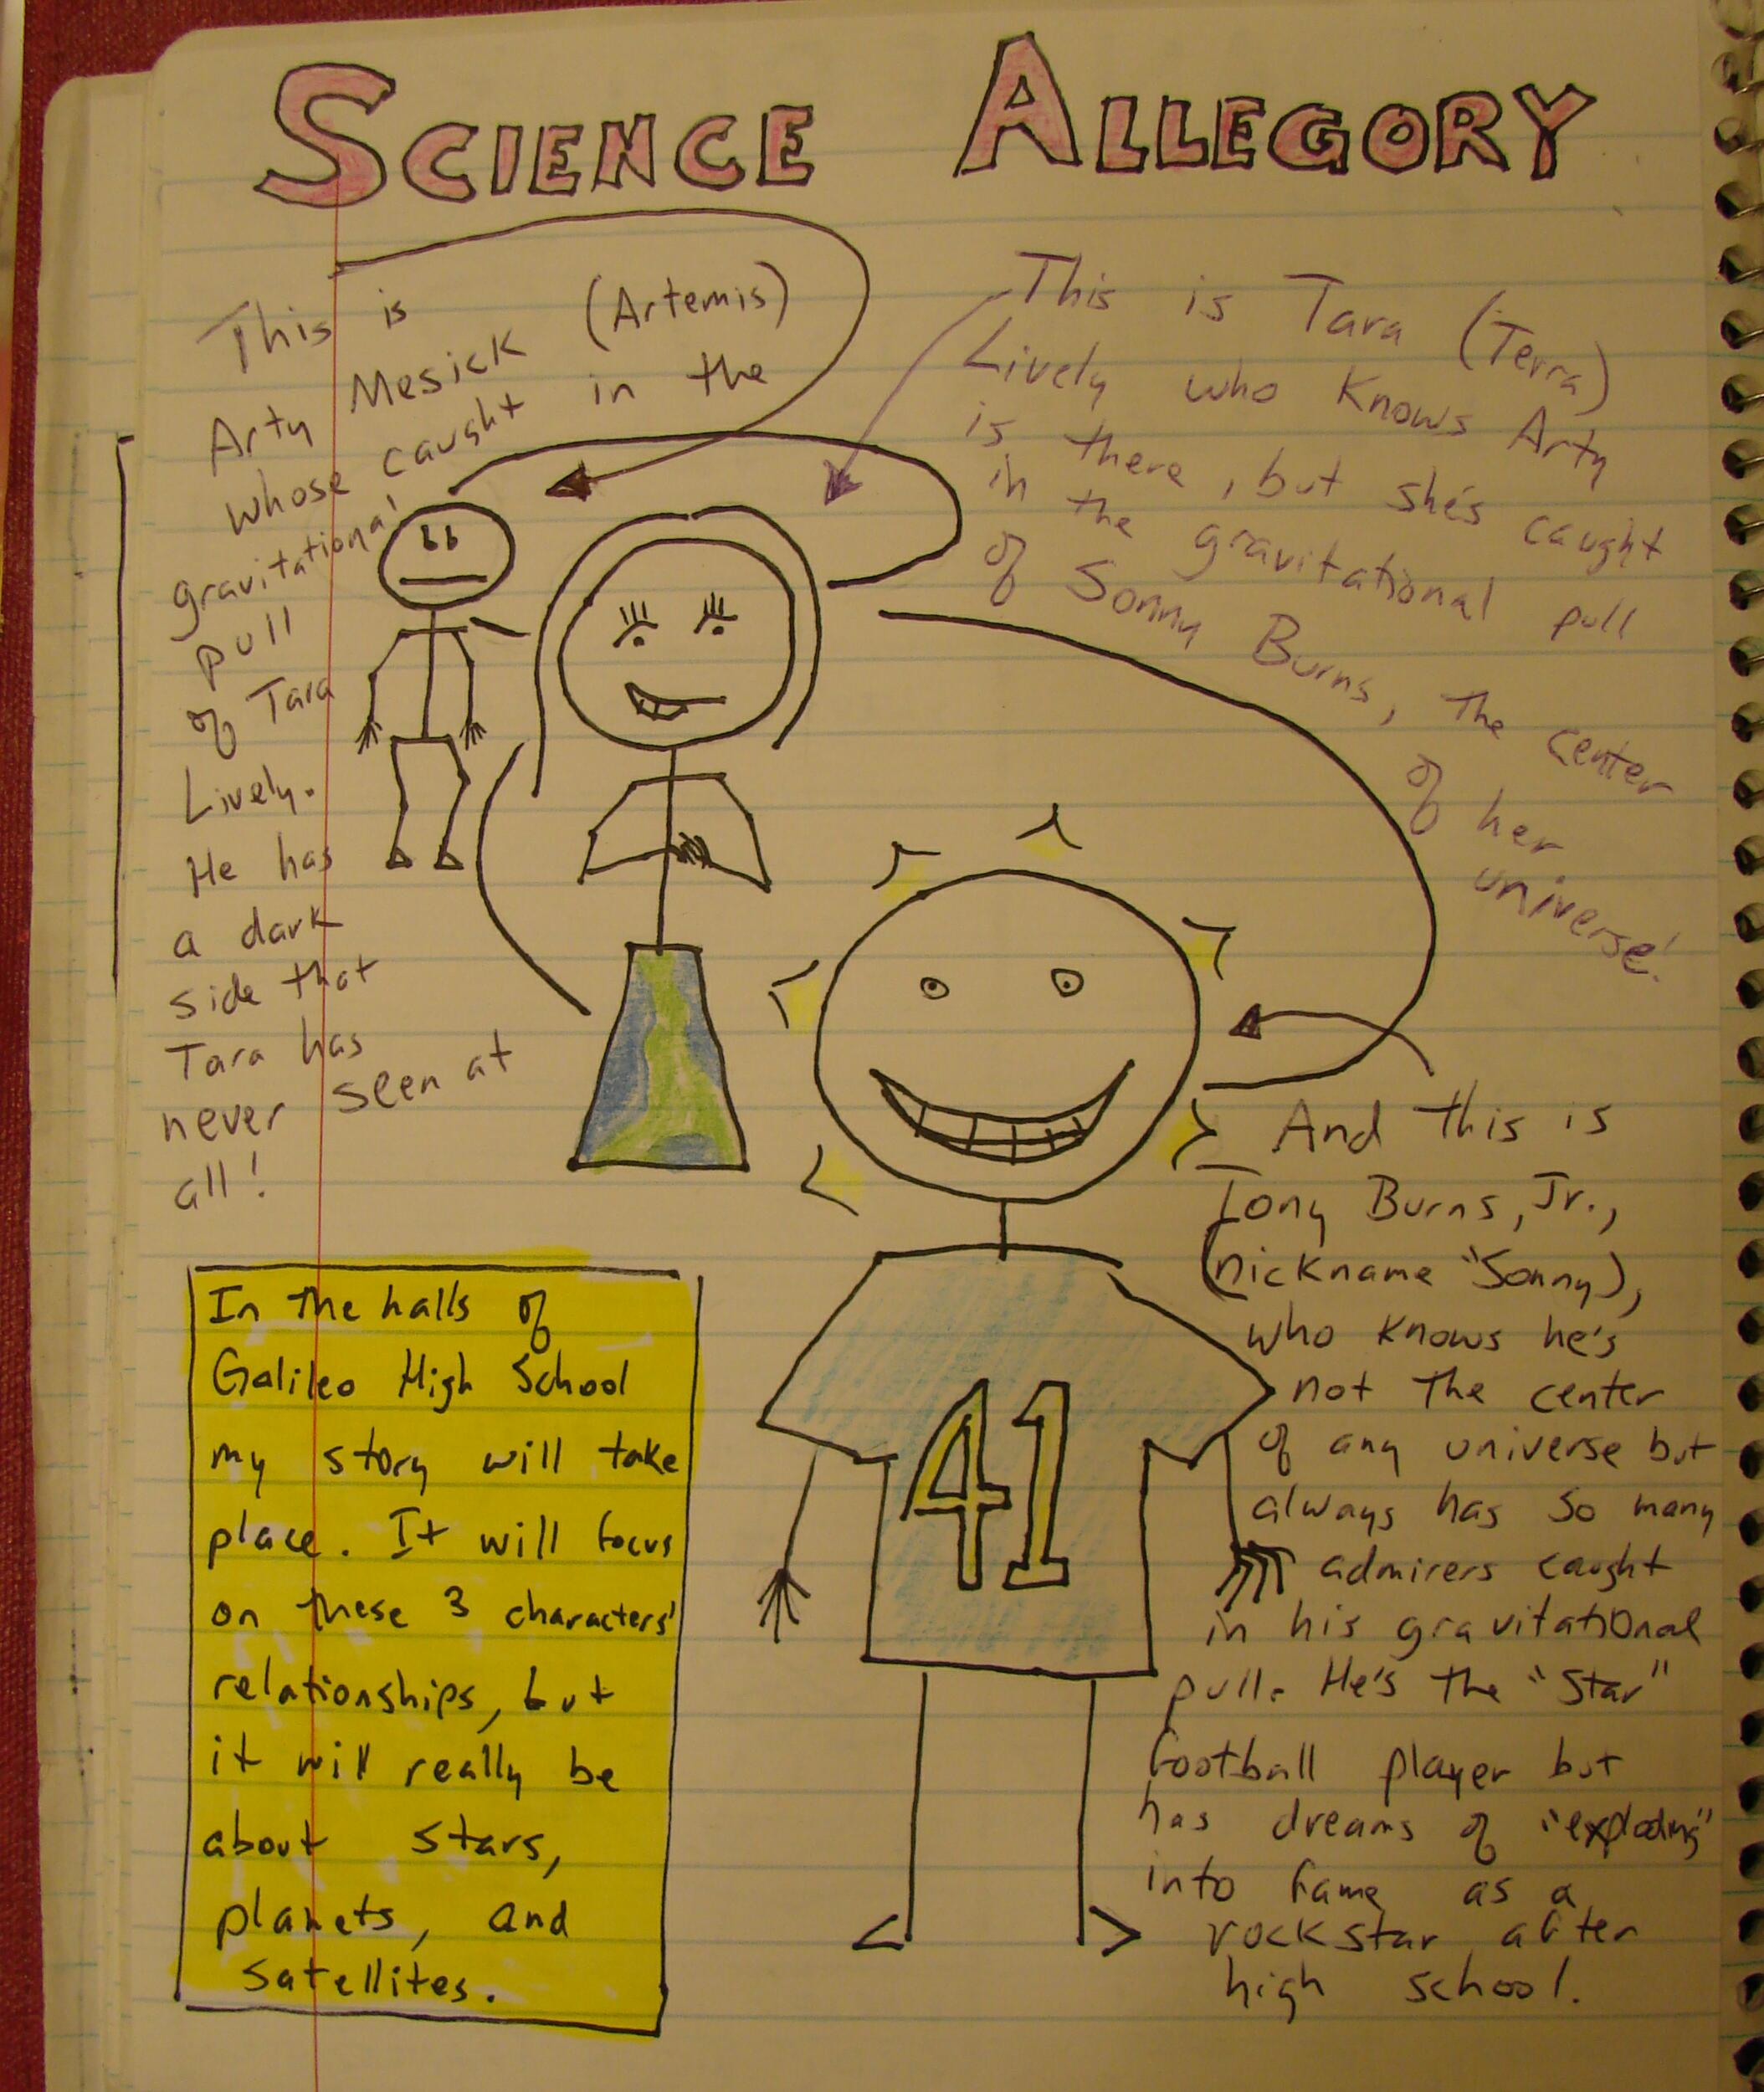 always write i keep a writer s notebook alongside my students do in our writer s notebooks i wanted to show my students how i would brainstorm for an allegory based on a scientific process here is the notebook